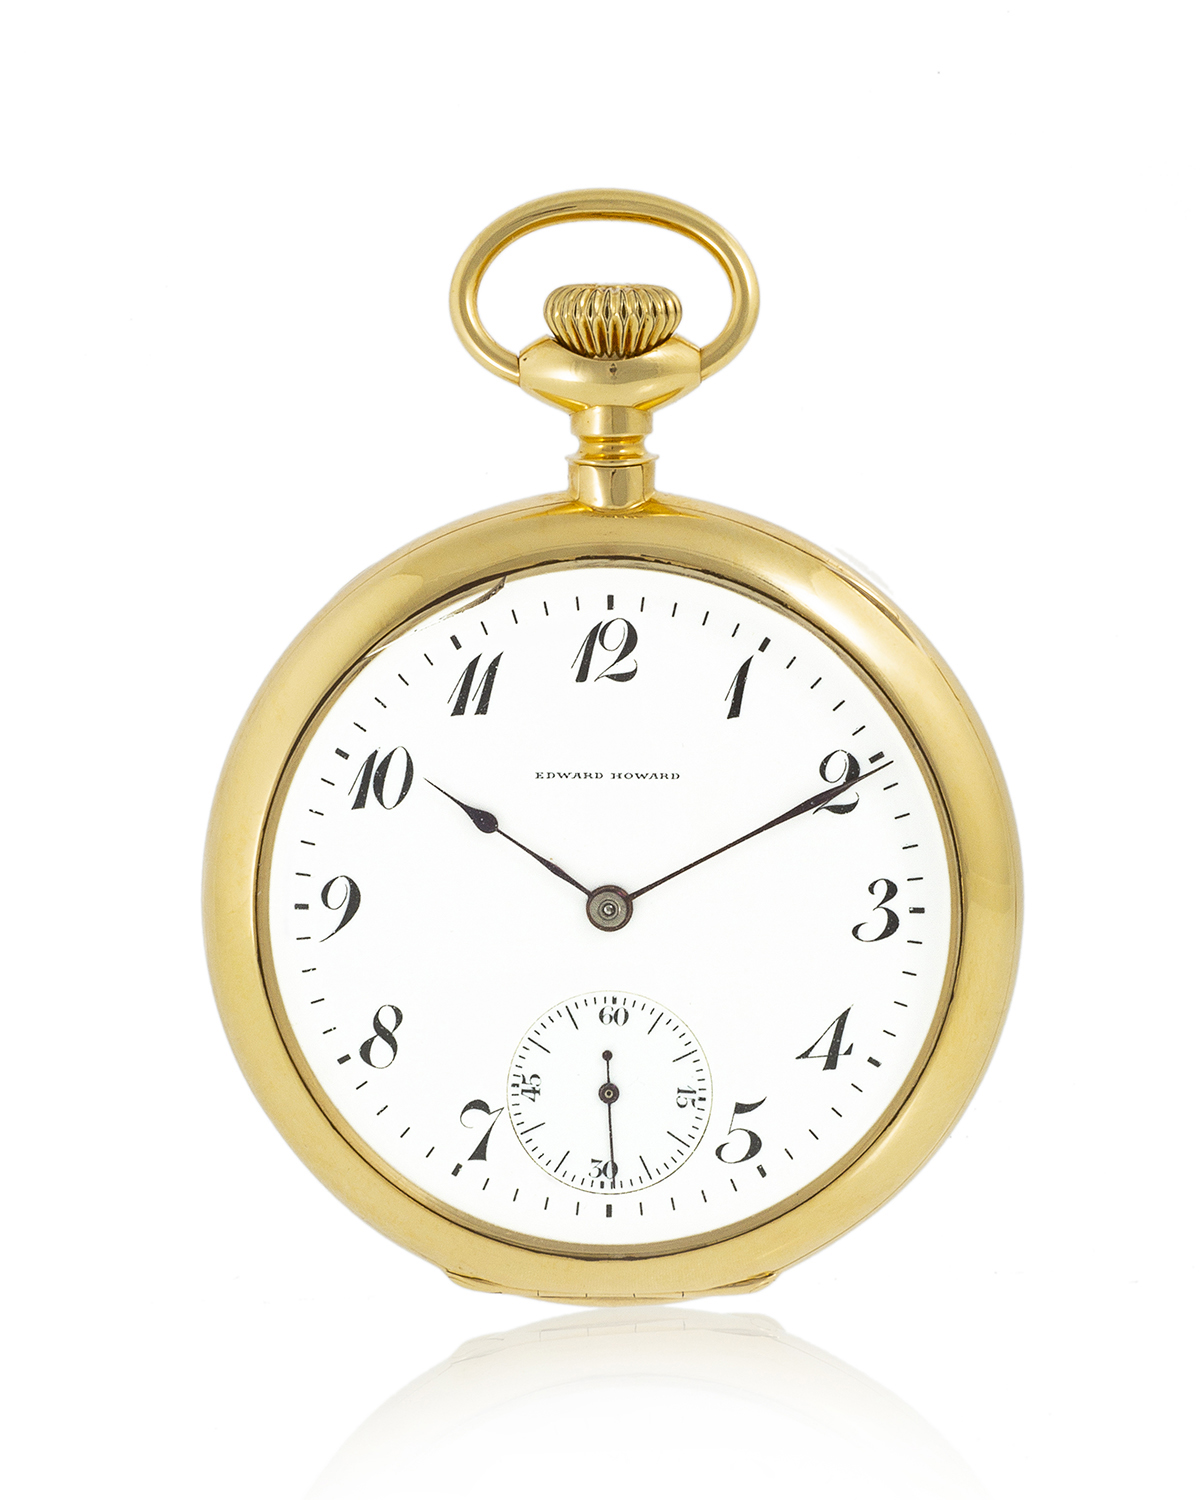 E. Howard Watch Co. pocket watch, No. 198